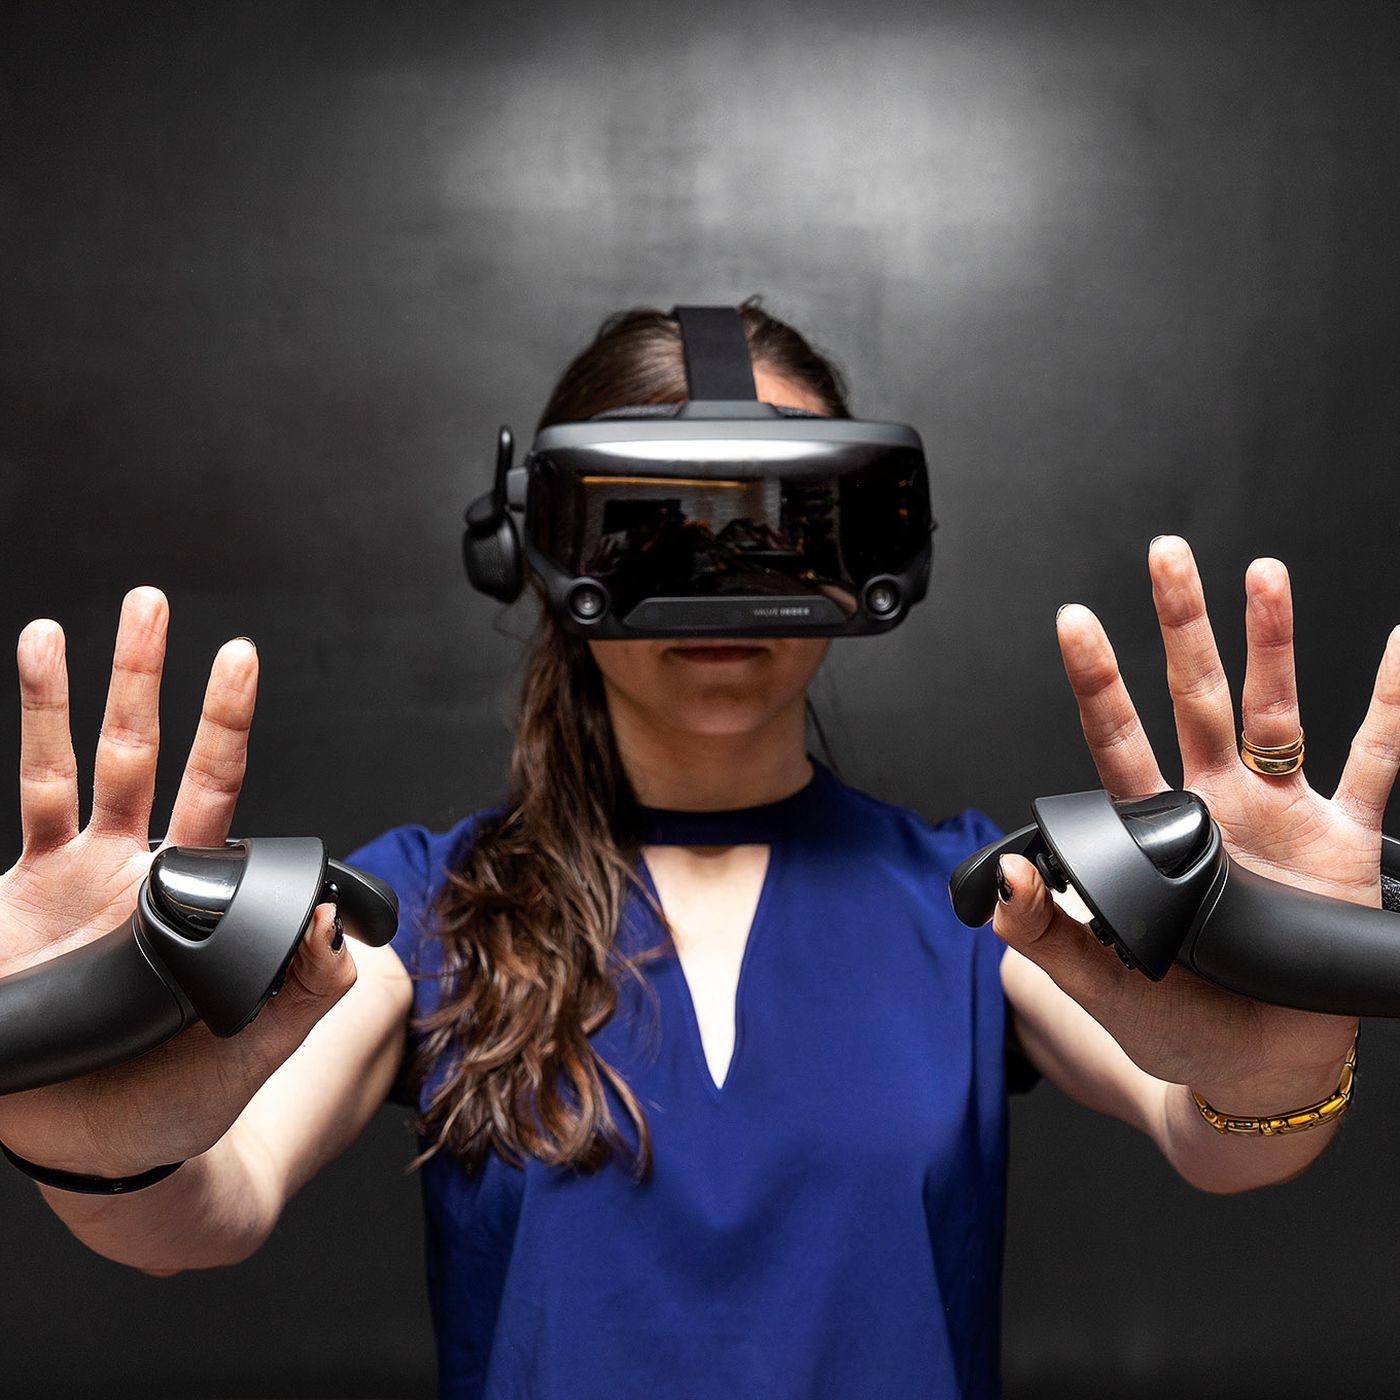 The Valve Index might have the most fun VR controllers I've